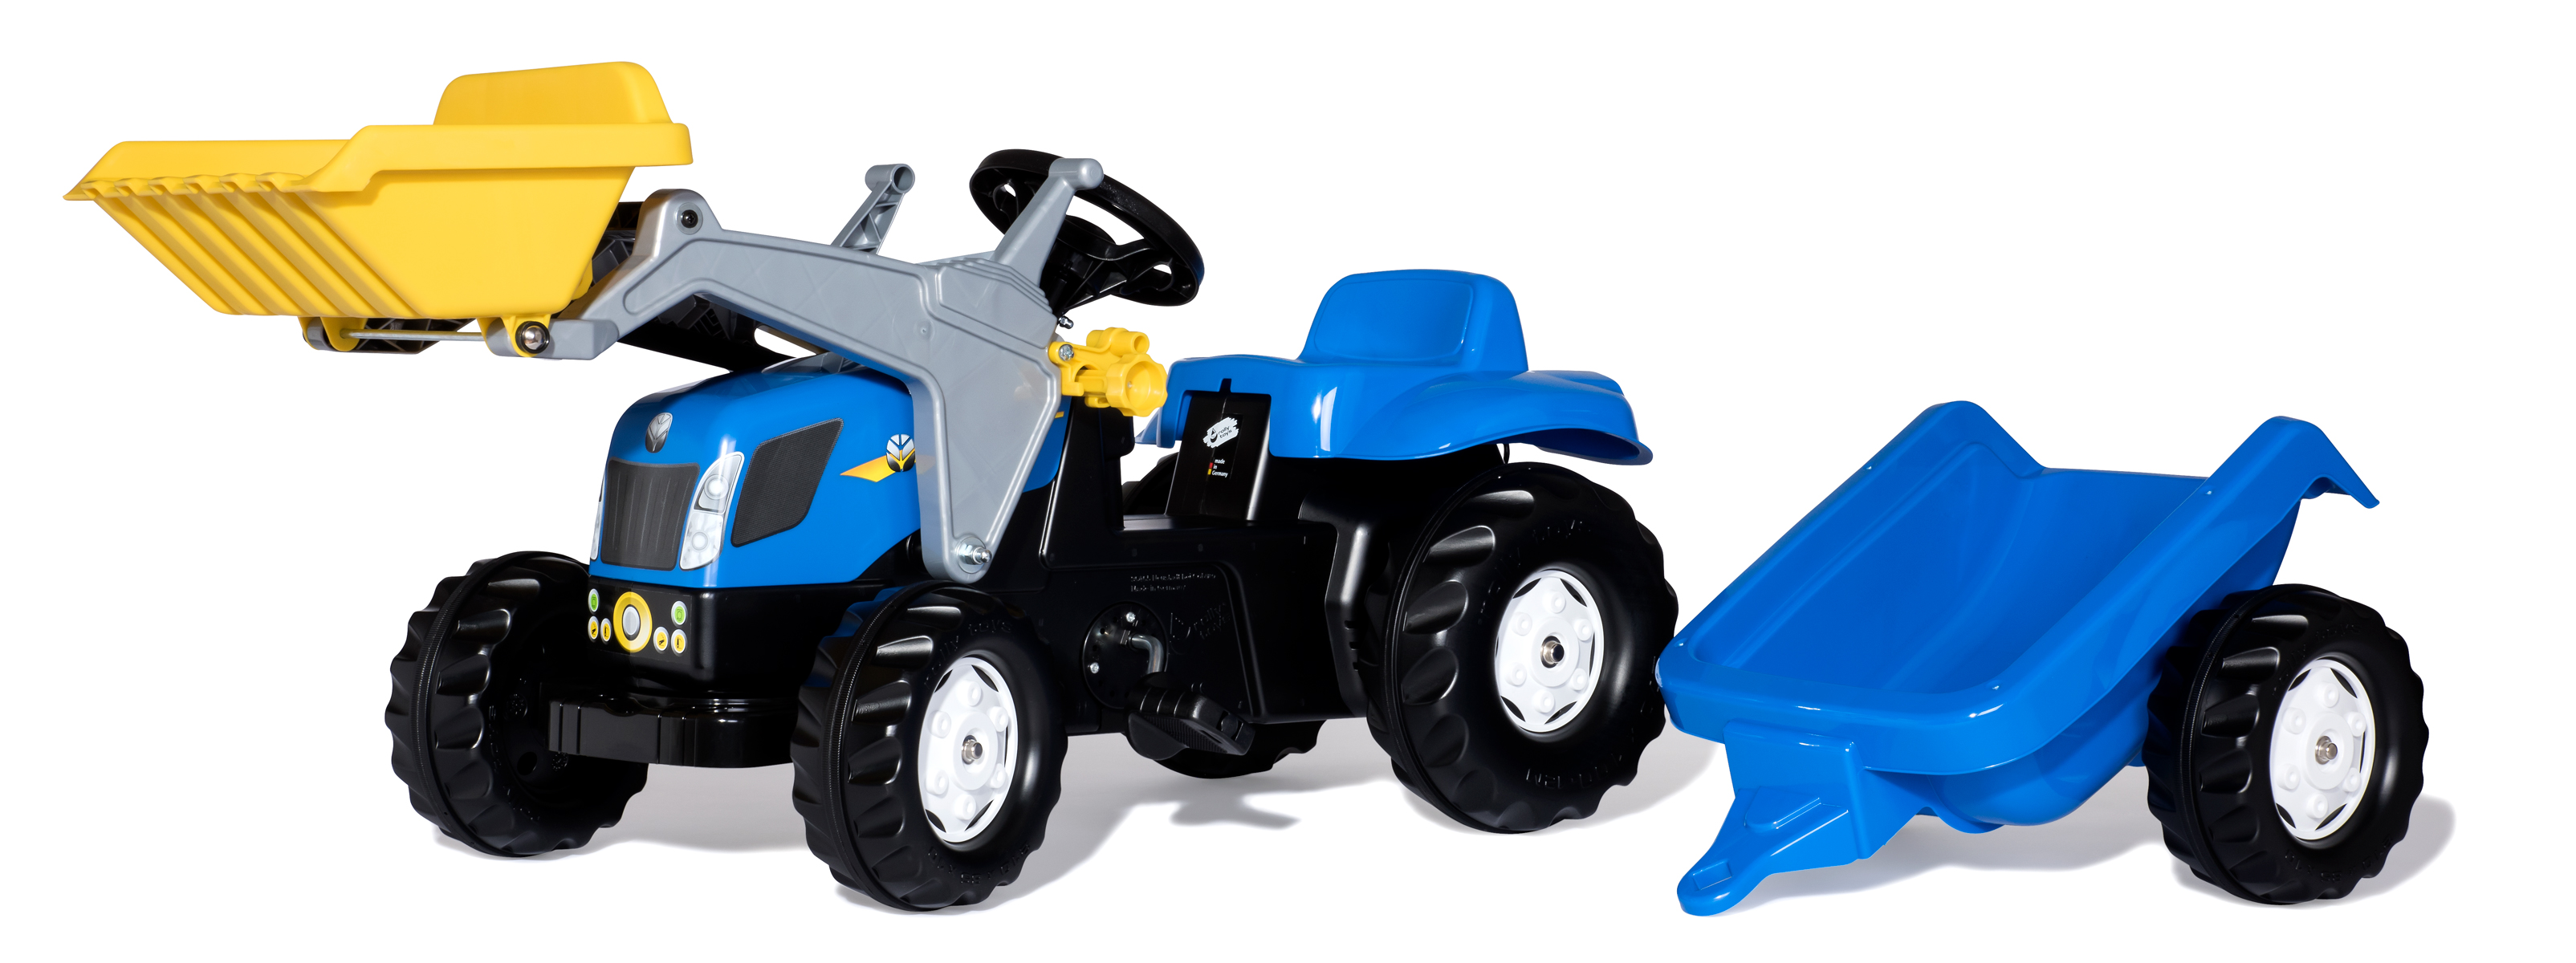 Trattore a pedali RollyKid New Holland con benna Rolly Toys